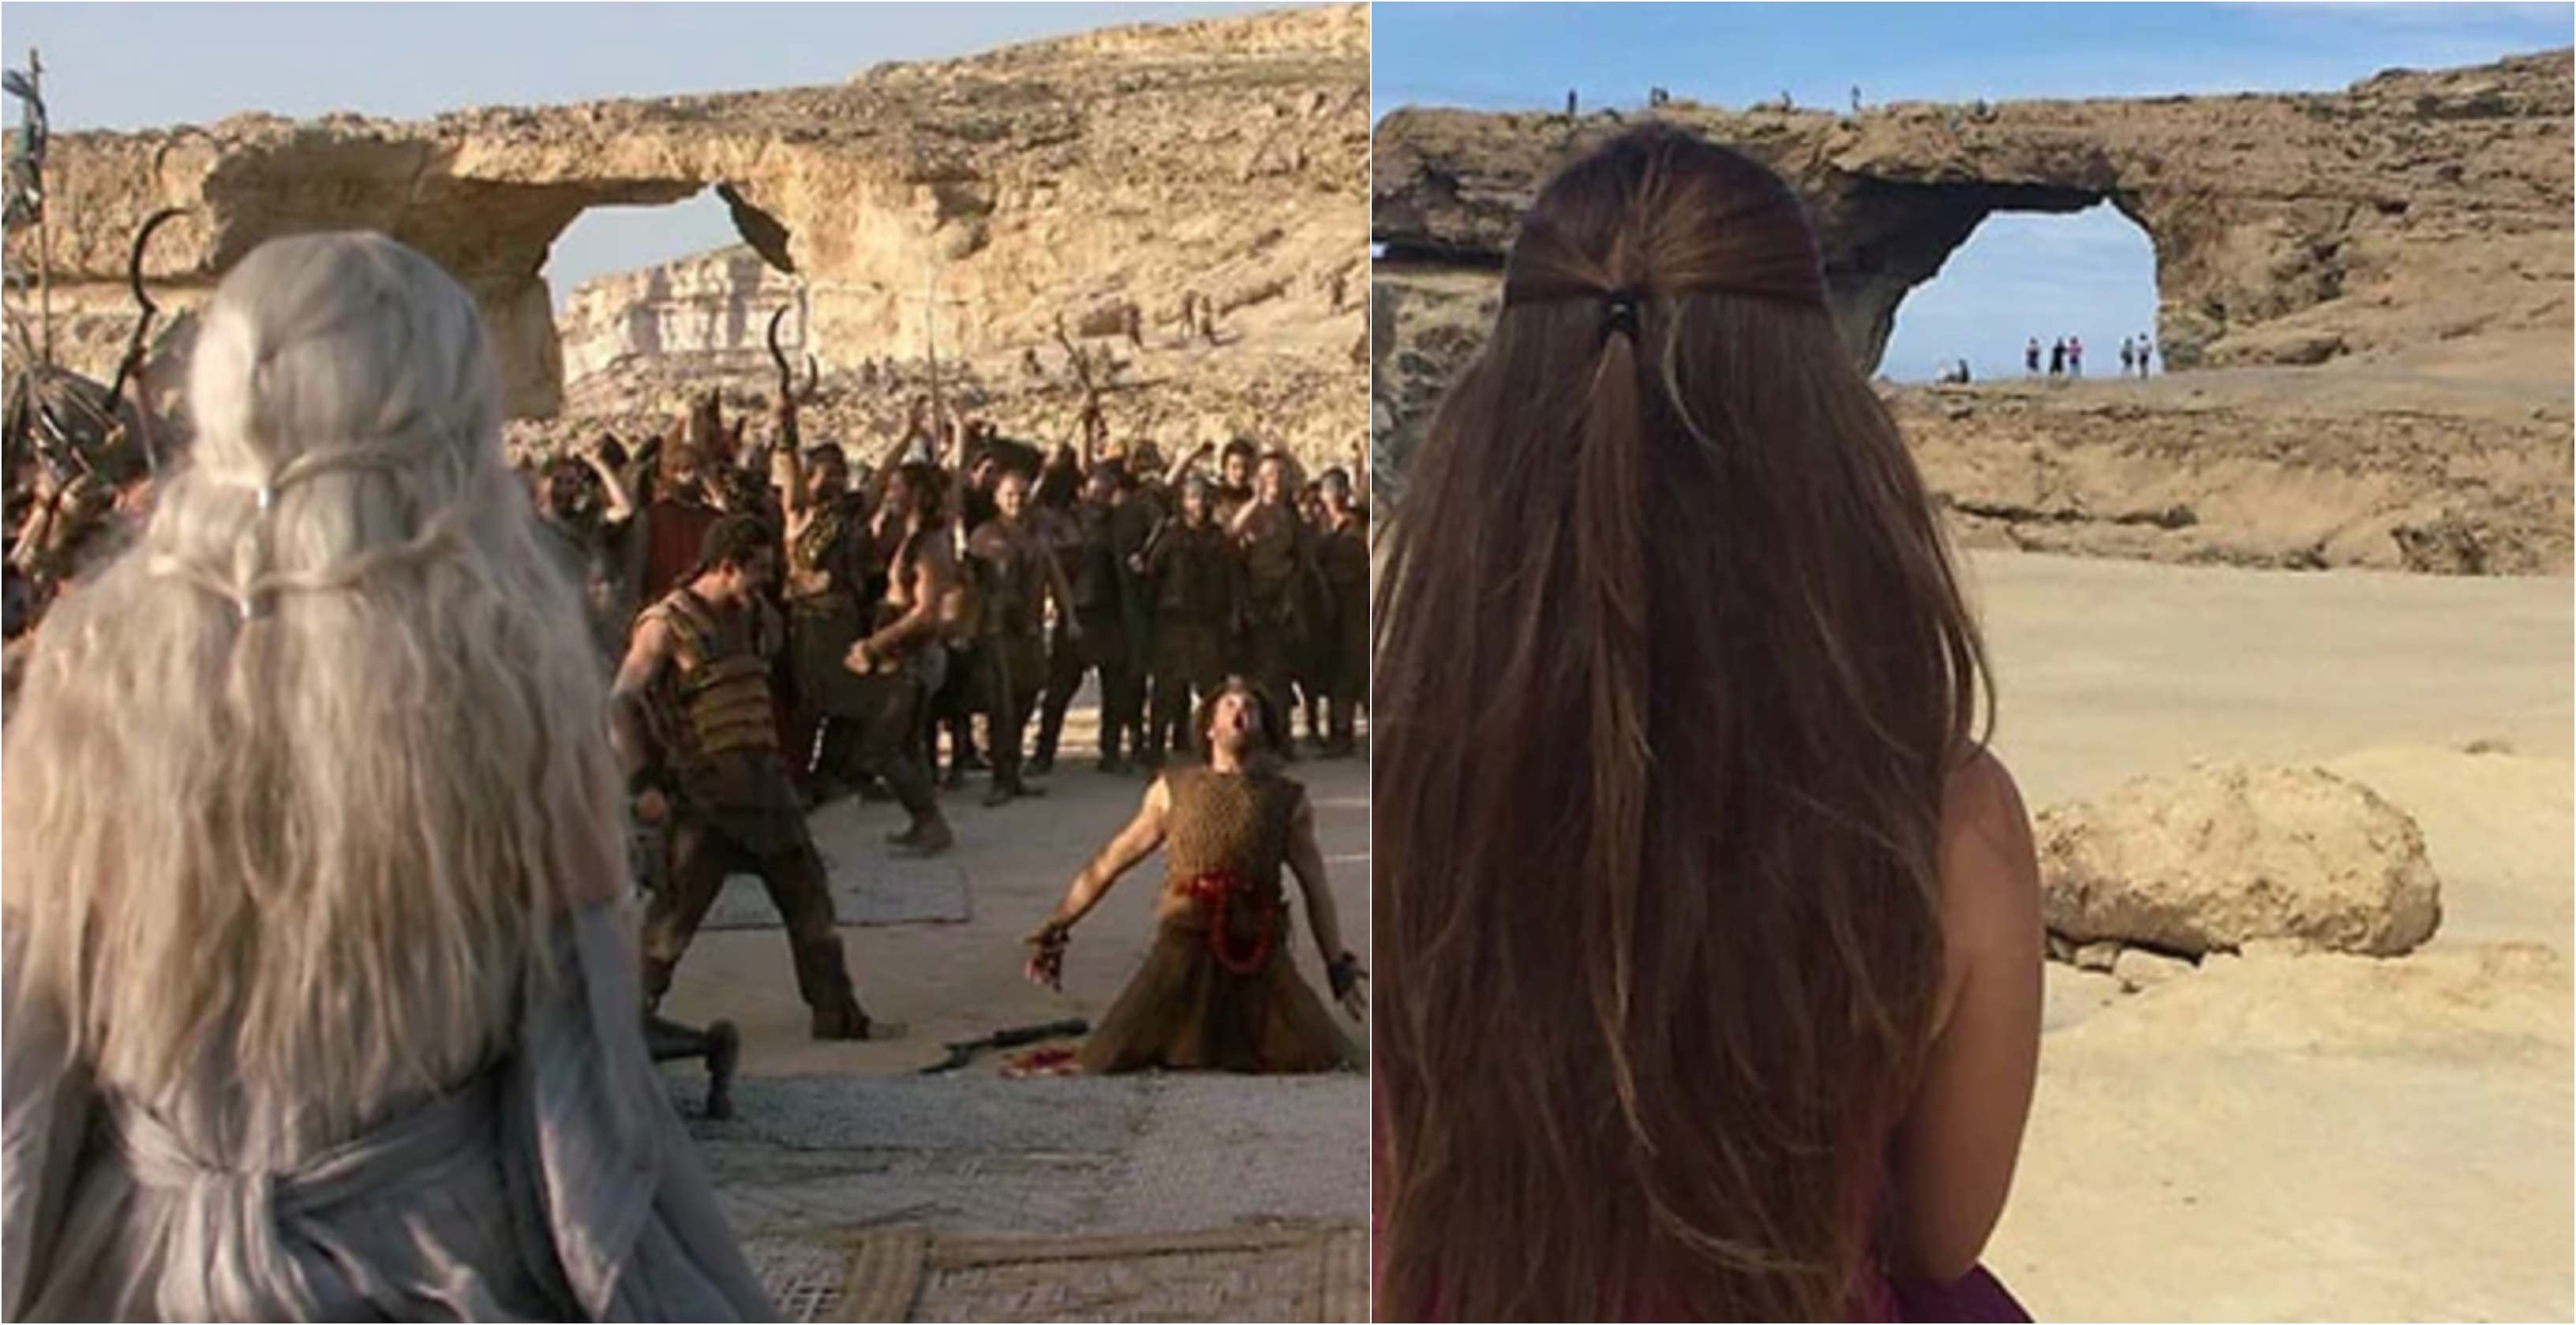 This is how a number of key places in Game of Thrones look in real life